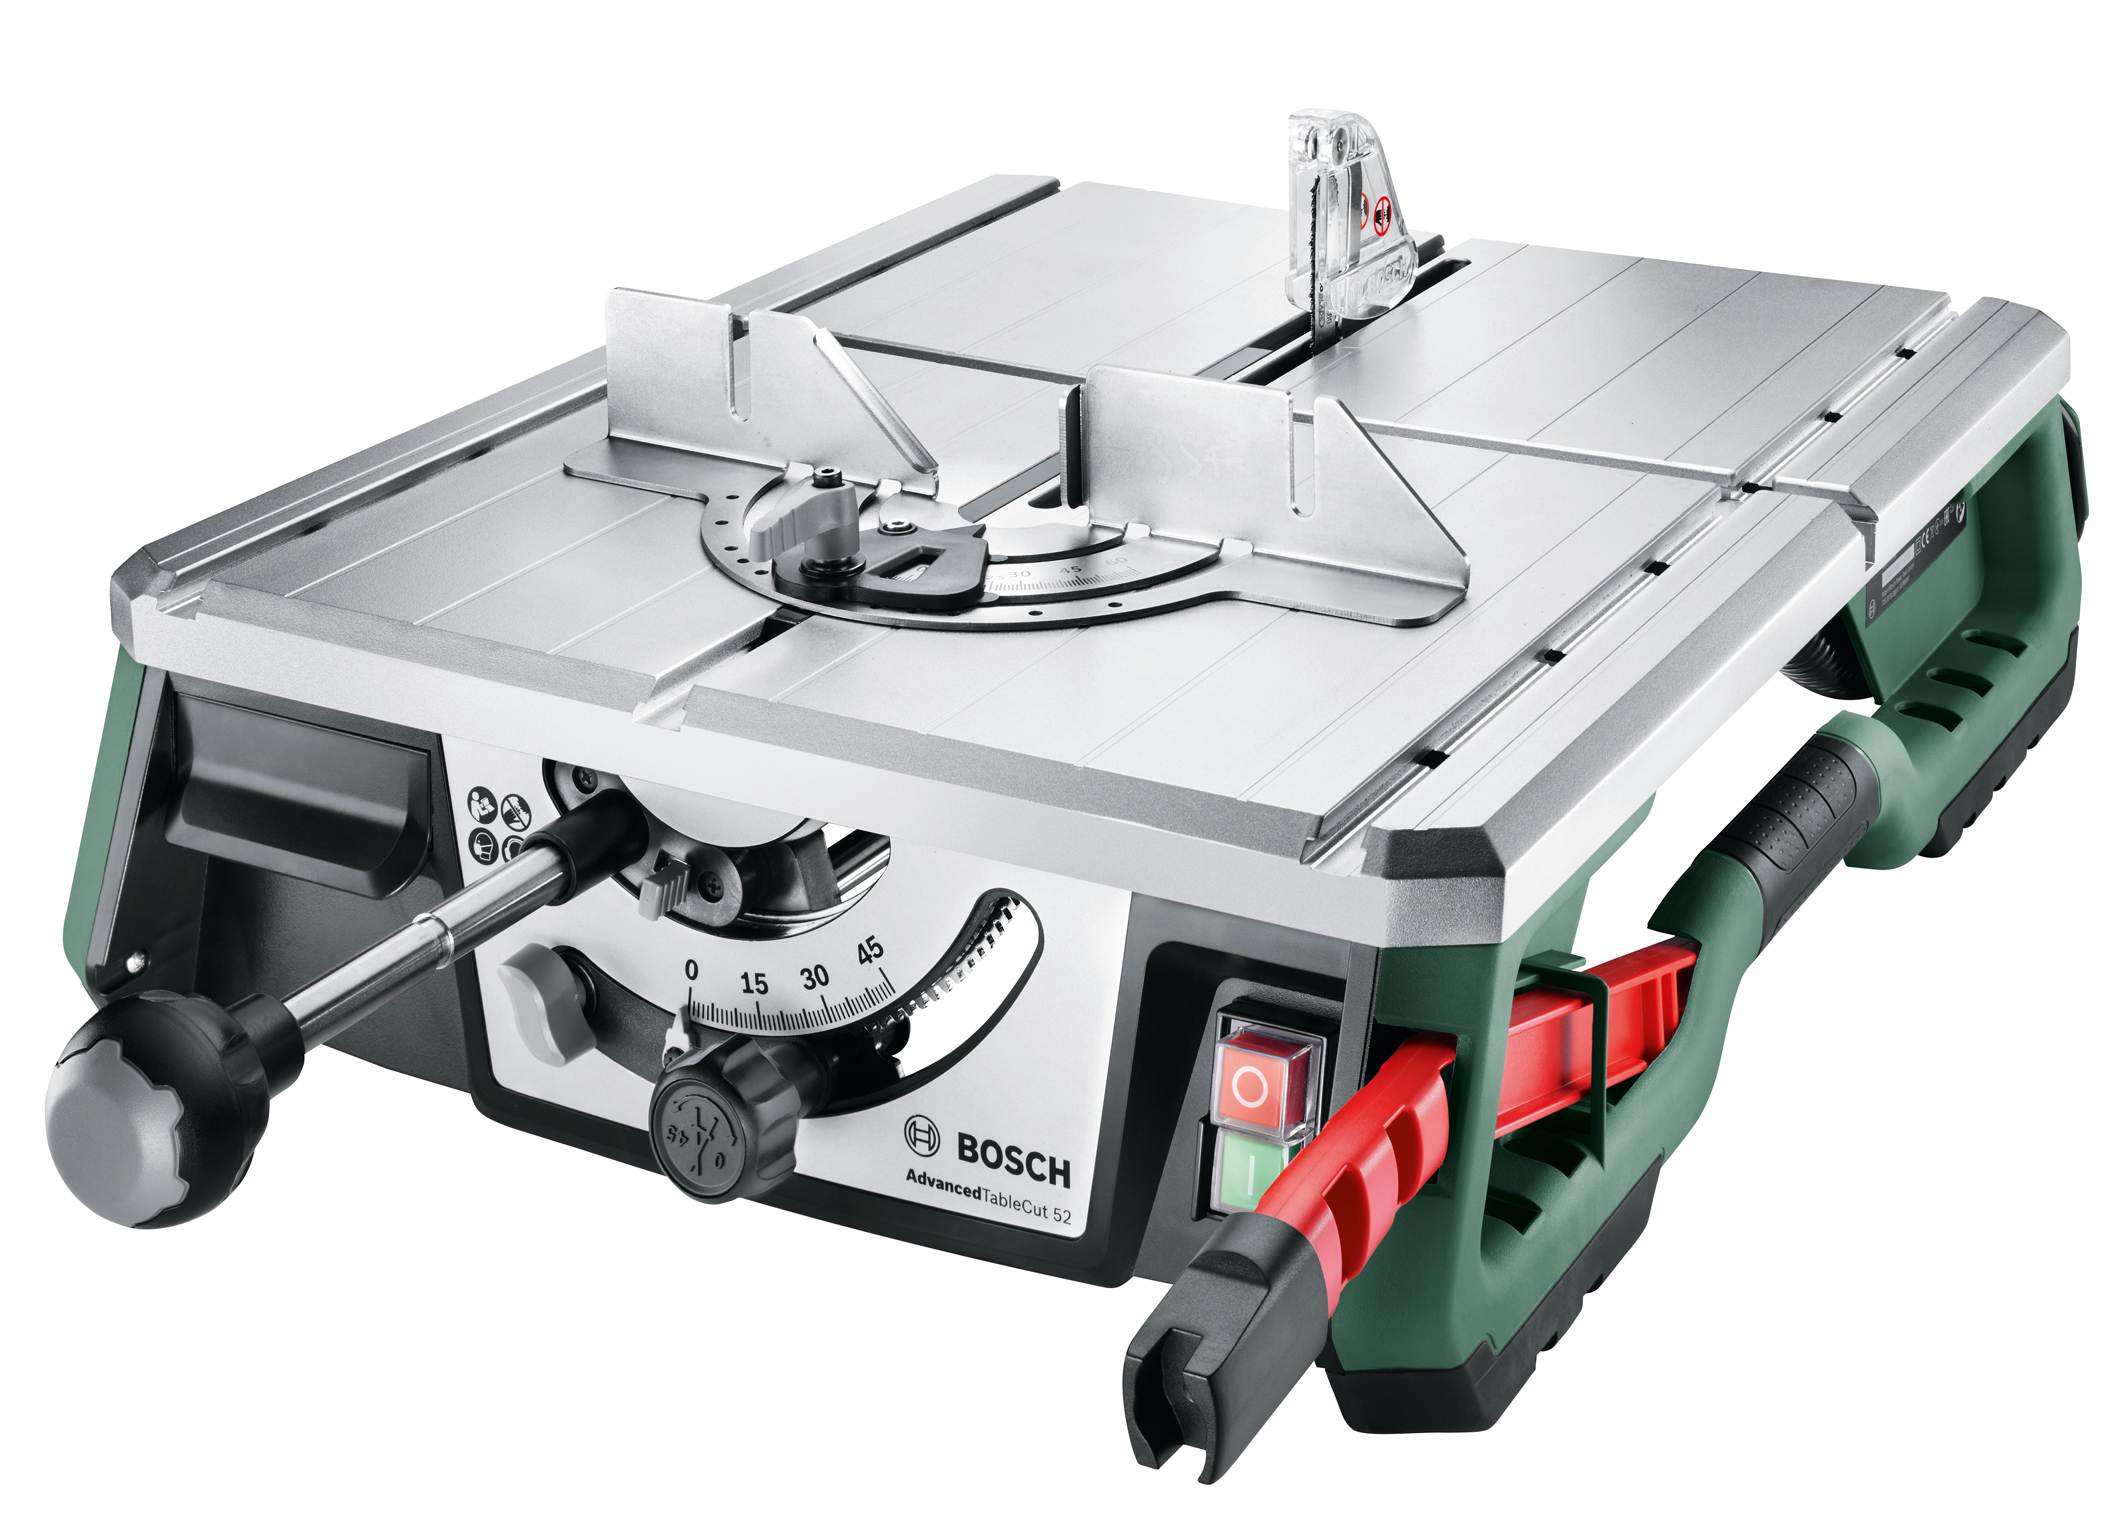 Lightweight and compact table saw for controlled sawing: AdvancedTableCut 52 from Bosch for DIY enthusiasts